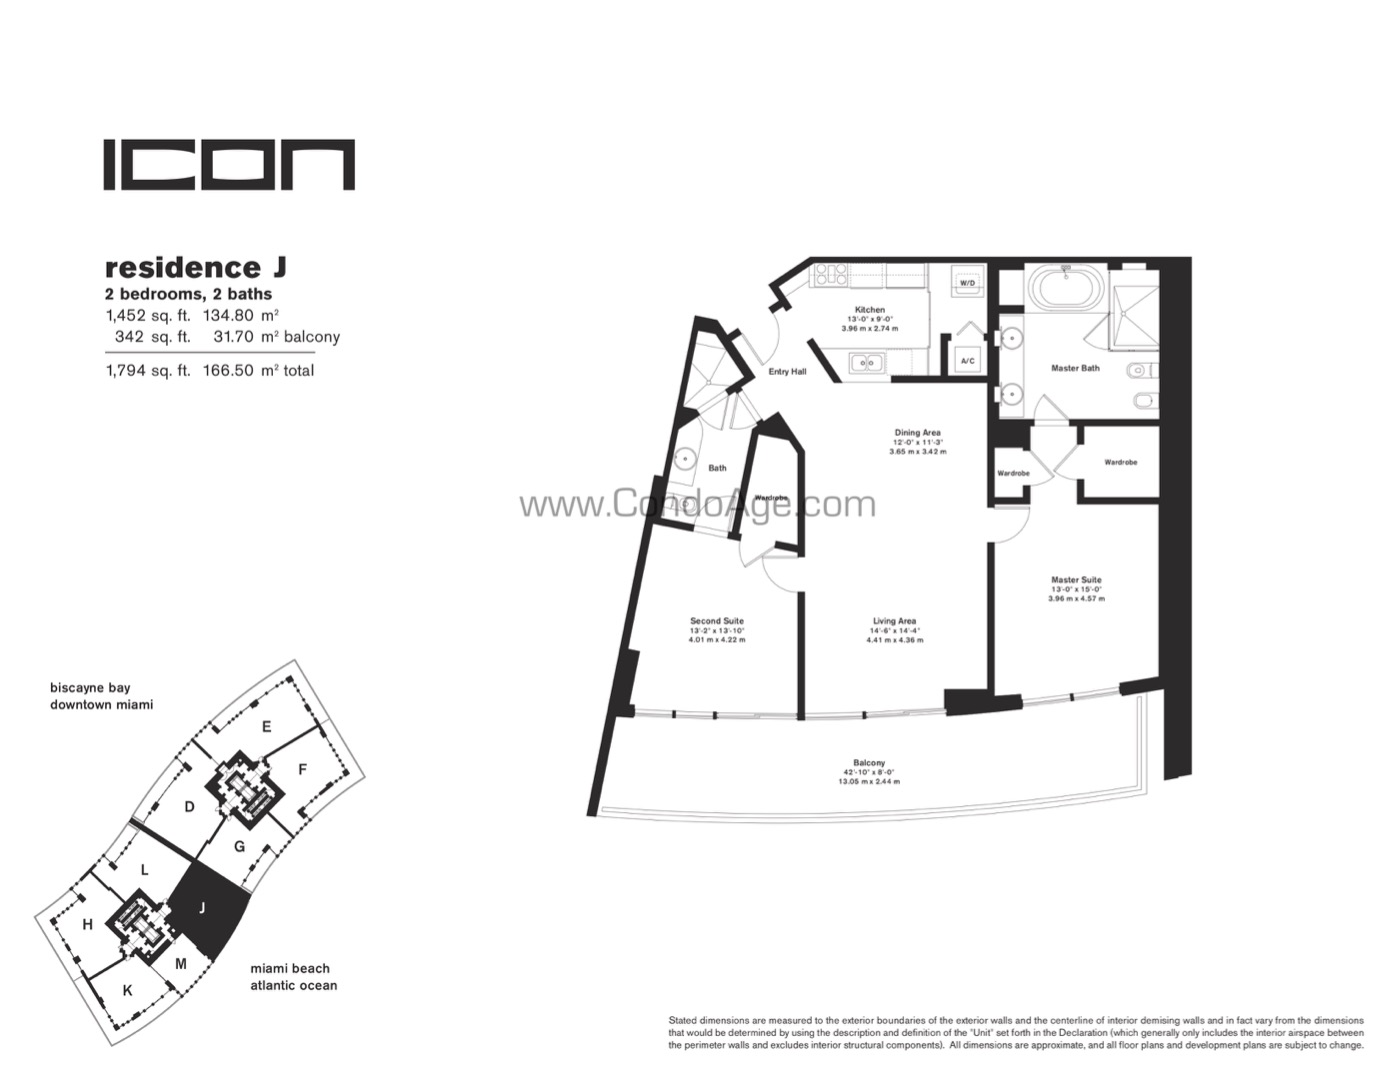 J floor plan image